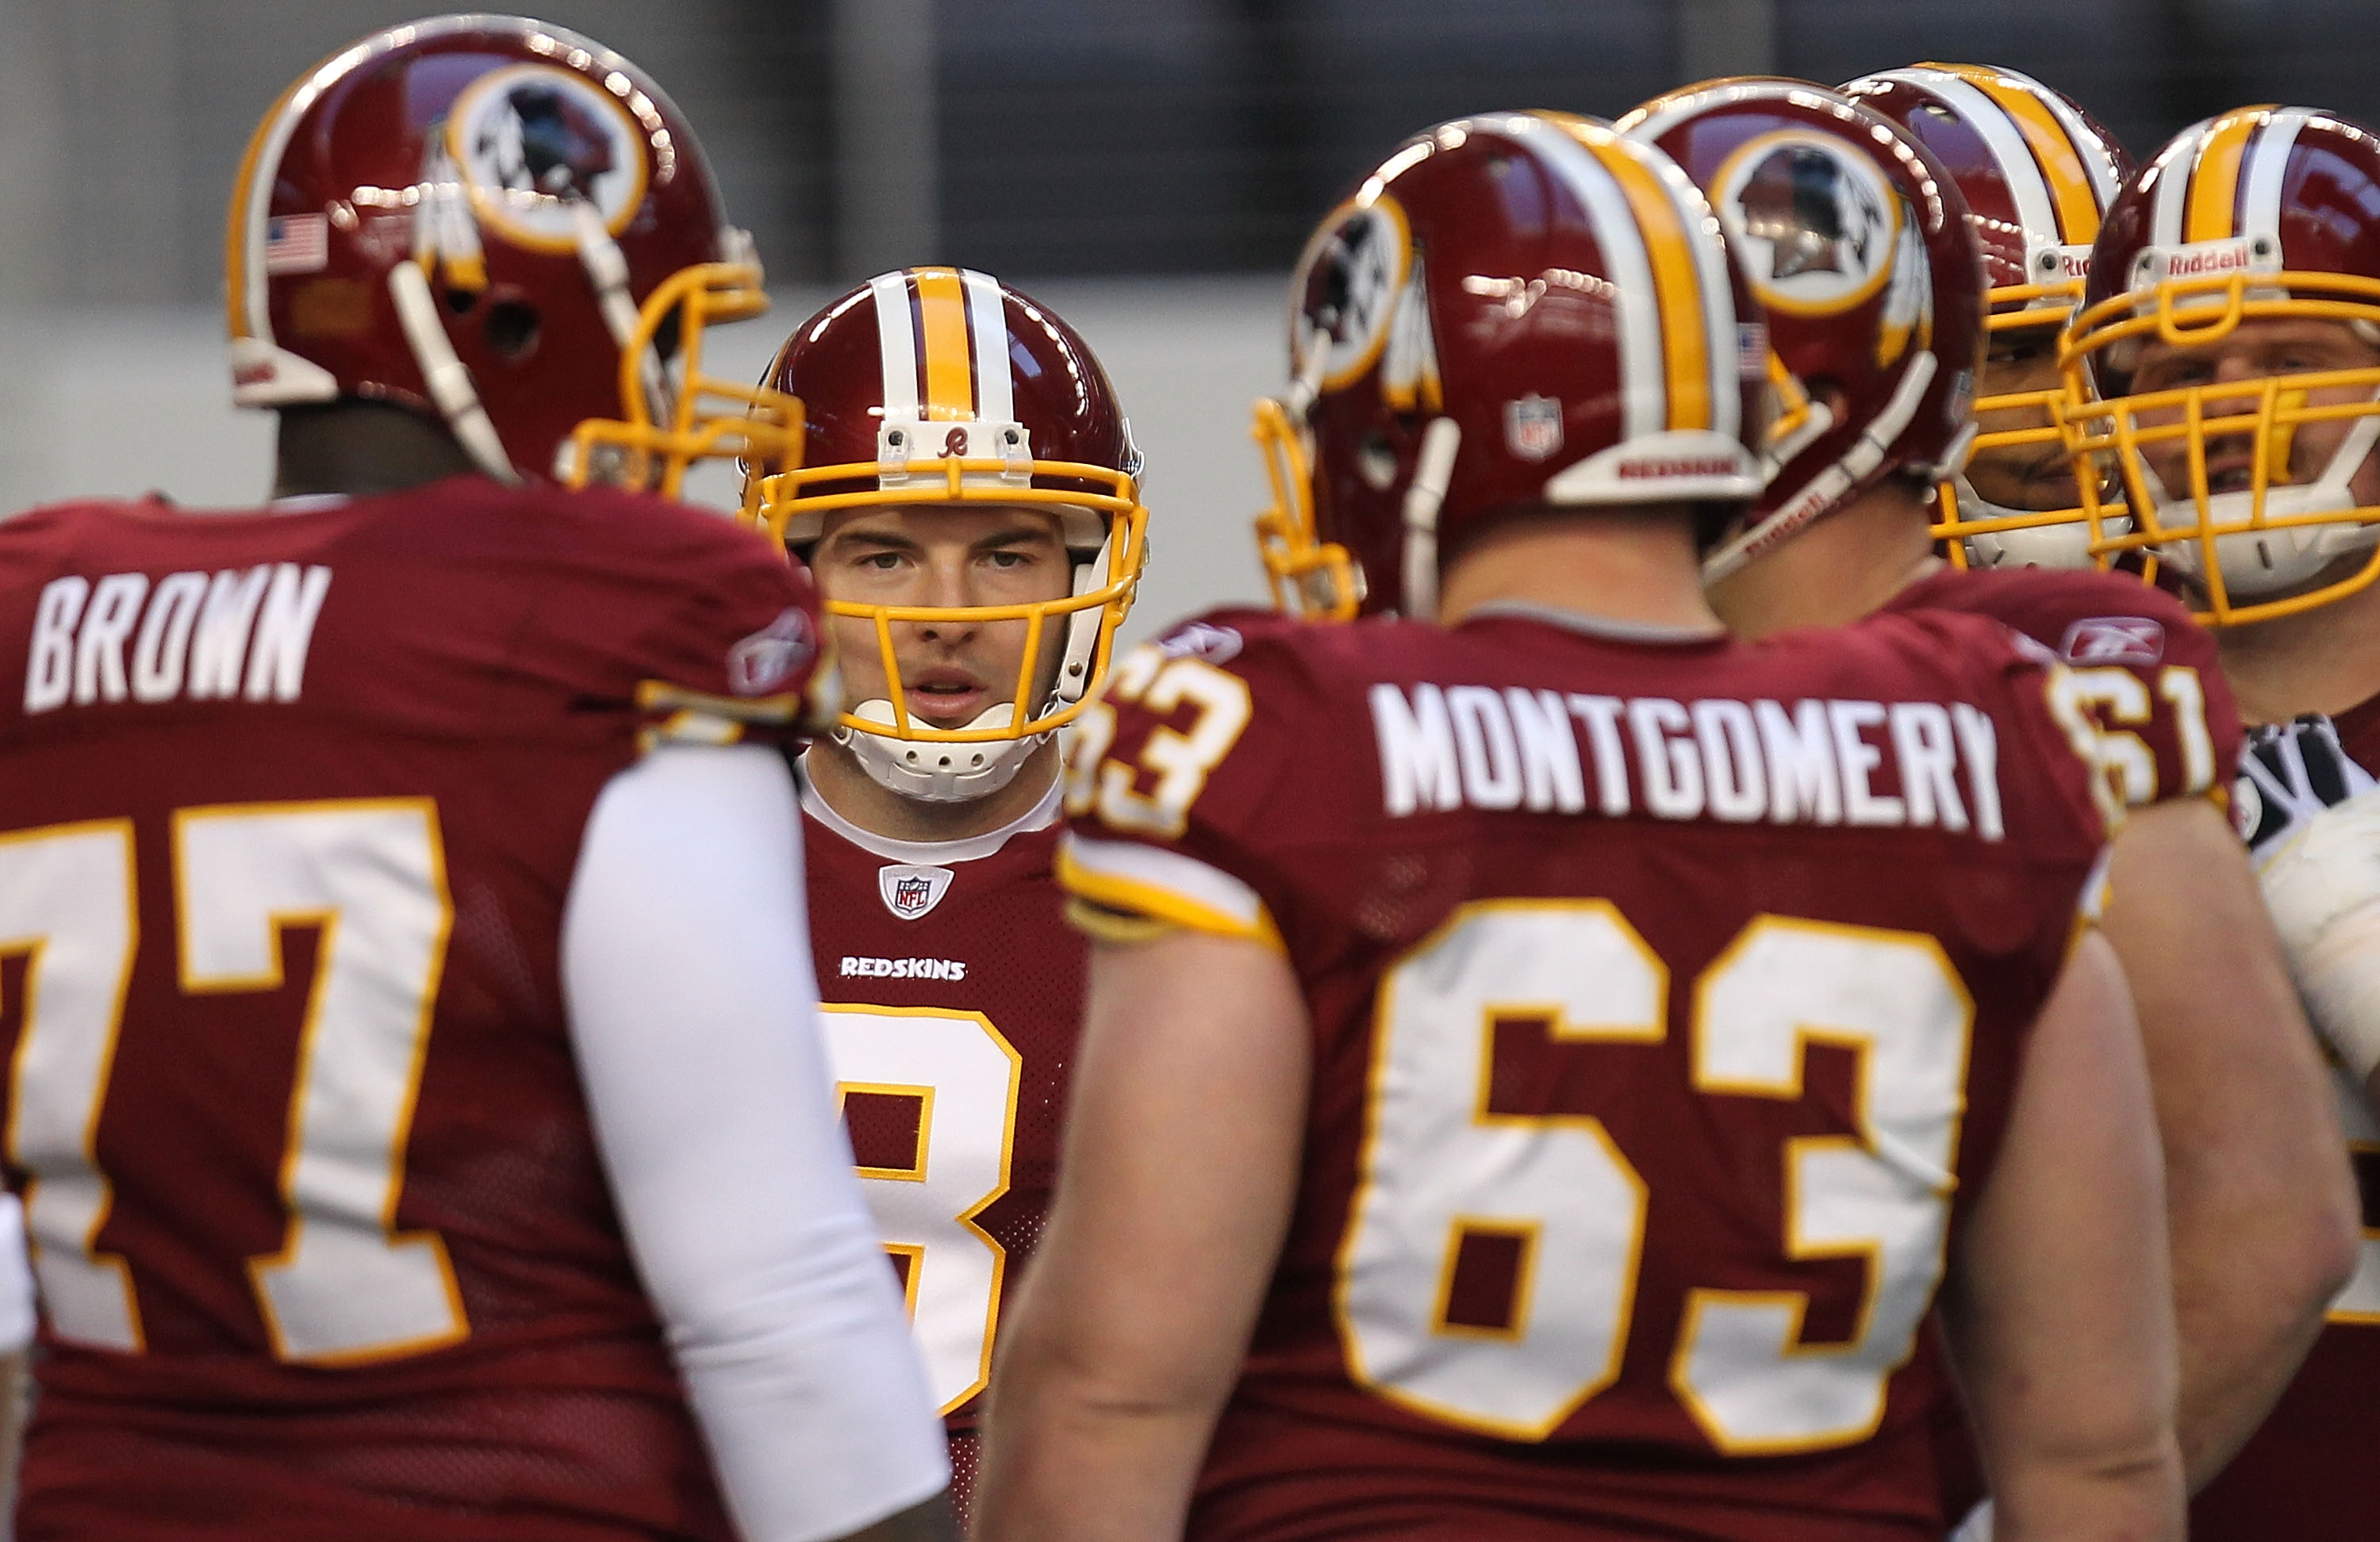 ARLINGTON, TX - DECEMBER 19:  Quarterback Rex Grossman #8 of the Washington Redskins huddles the offense against the Dallas Cowboys in the first quarter at Cowboys Stadium on December 19, 2010 in Arlington, Texas.  (Photo by Ronald Martinez/Getty Images)